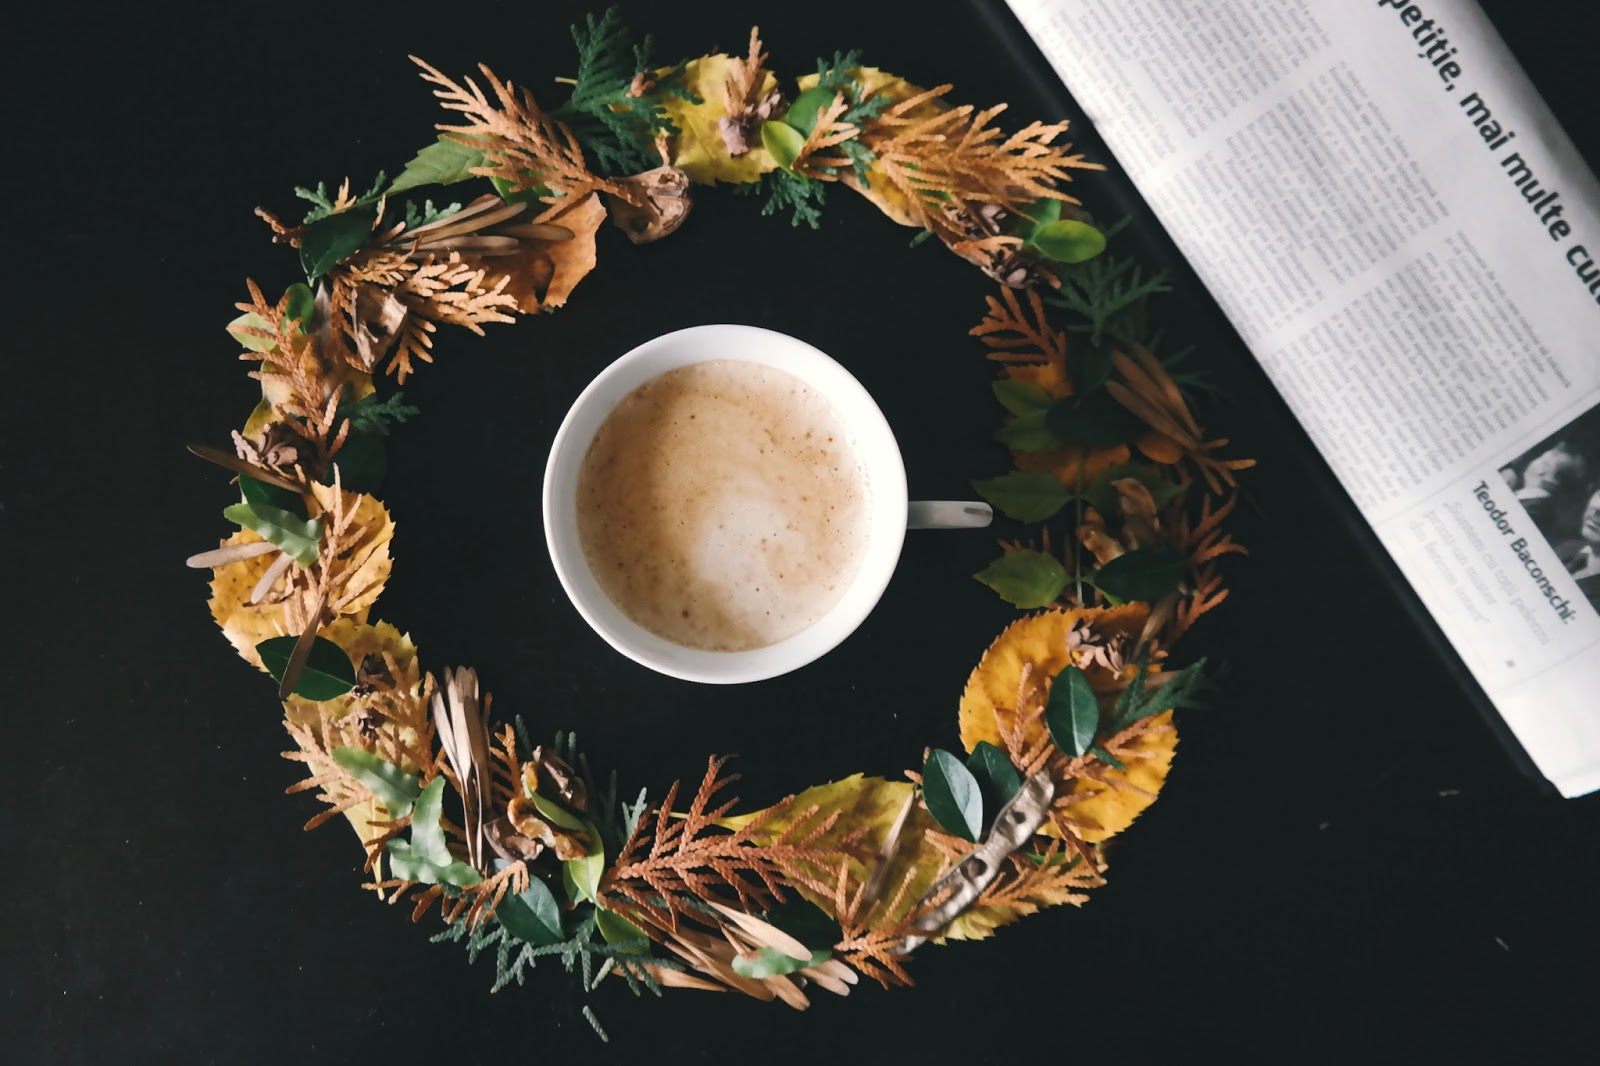 7 Organic And Festive Ways To Decorate Your Home For The